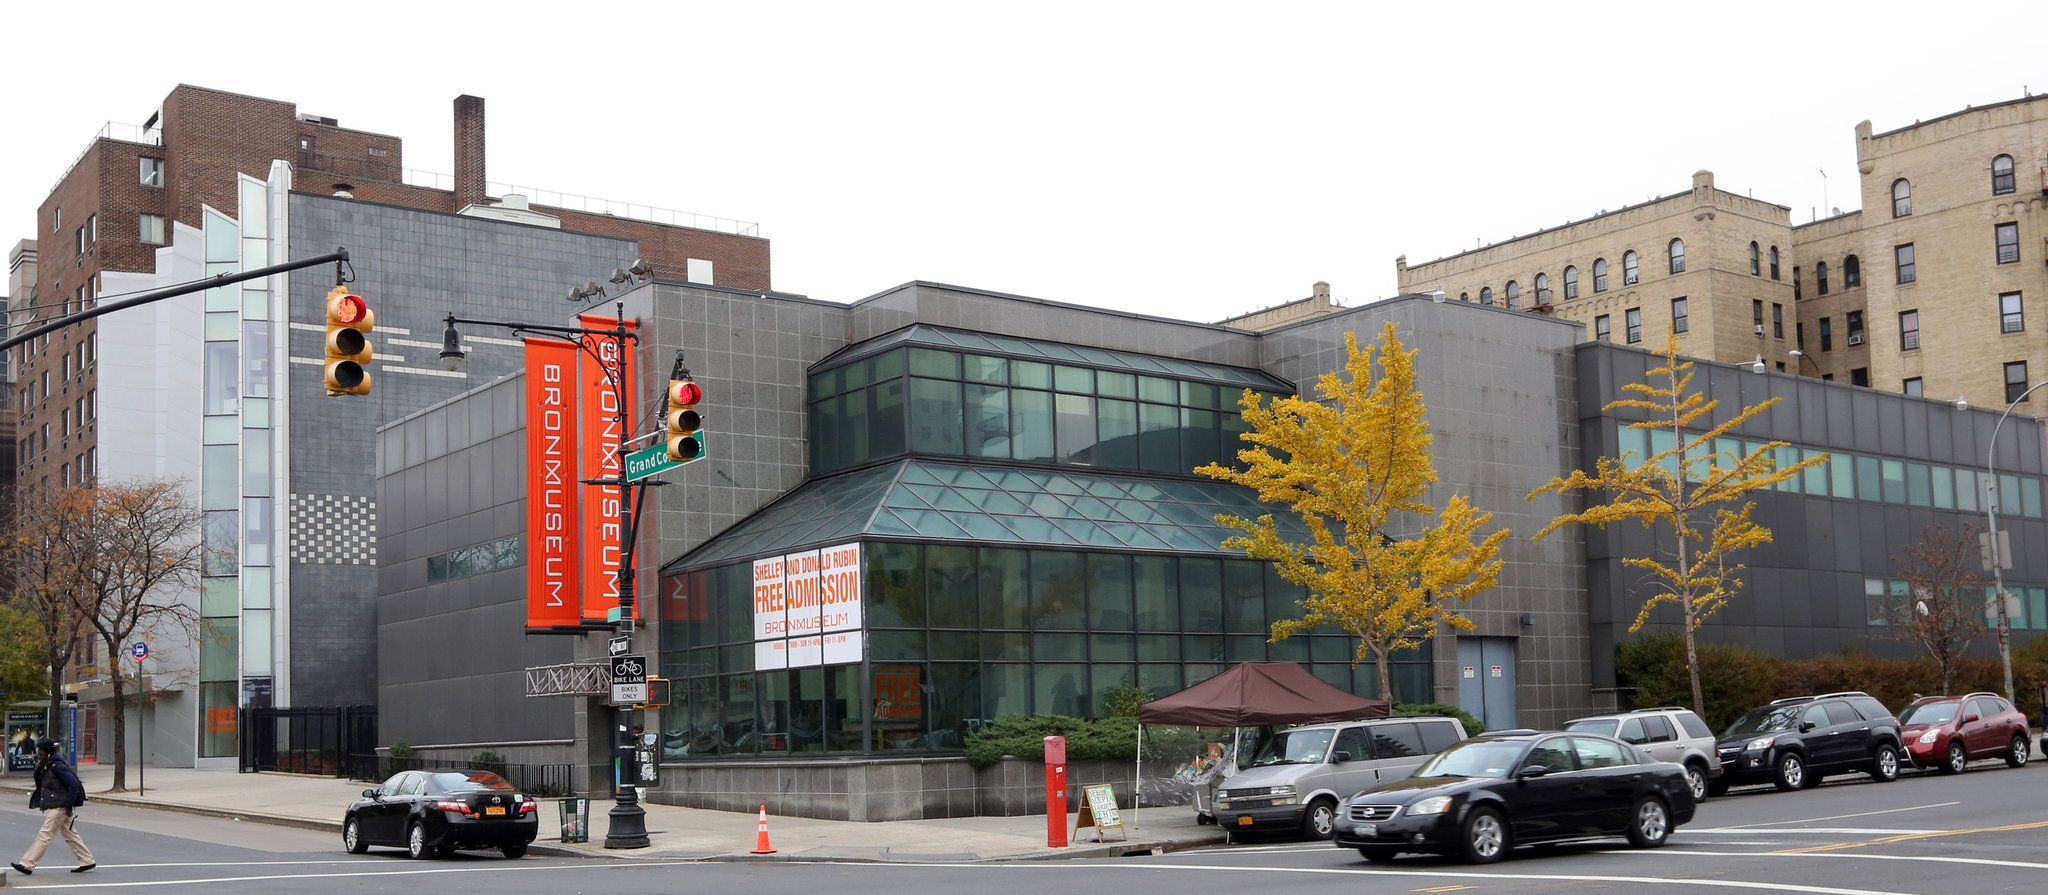 Bronx Museum of the Arts, South Bronx, Mott Haven